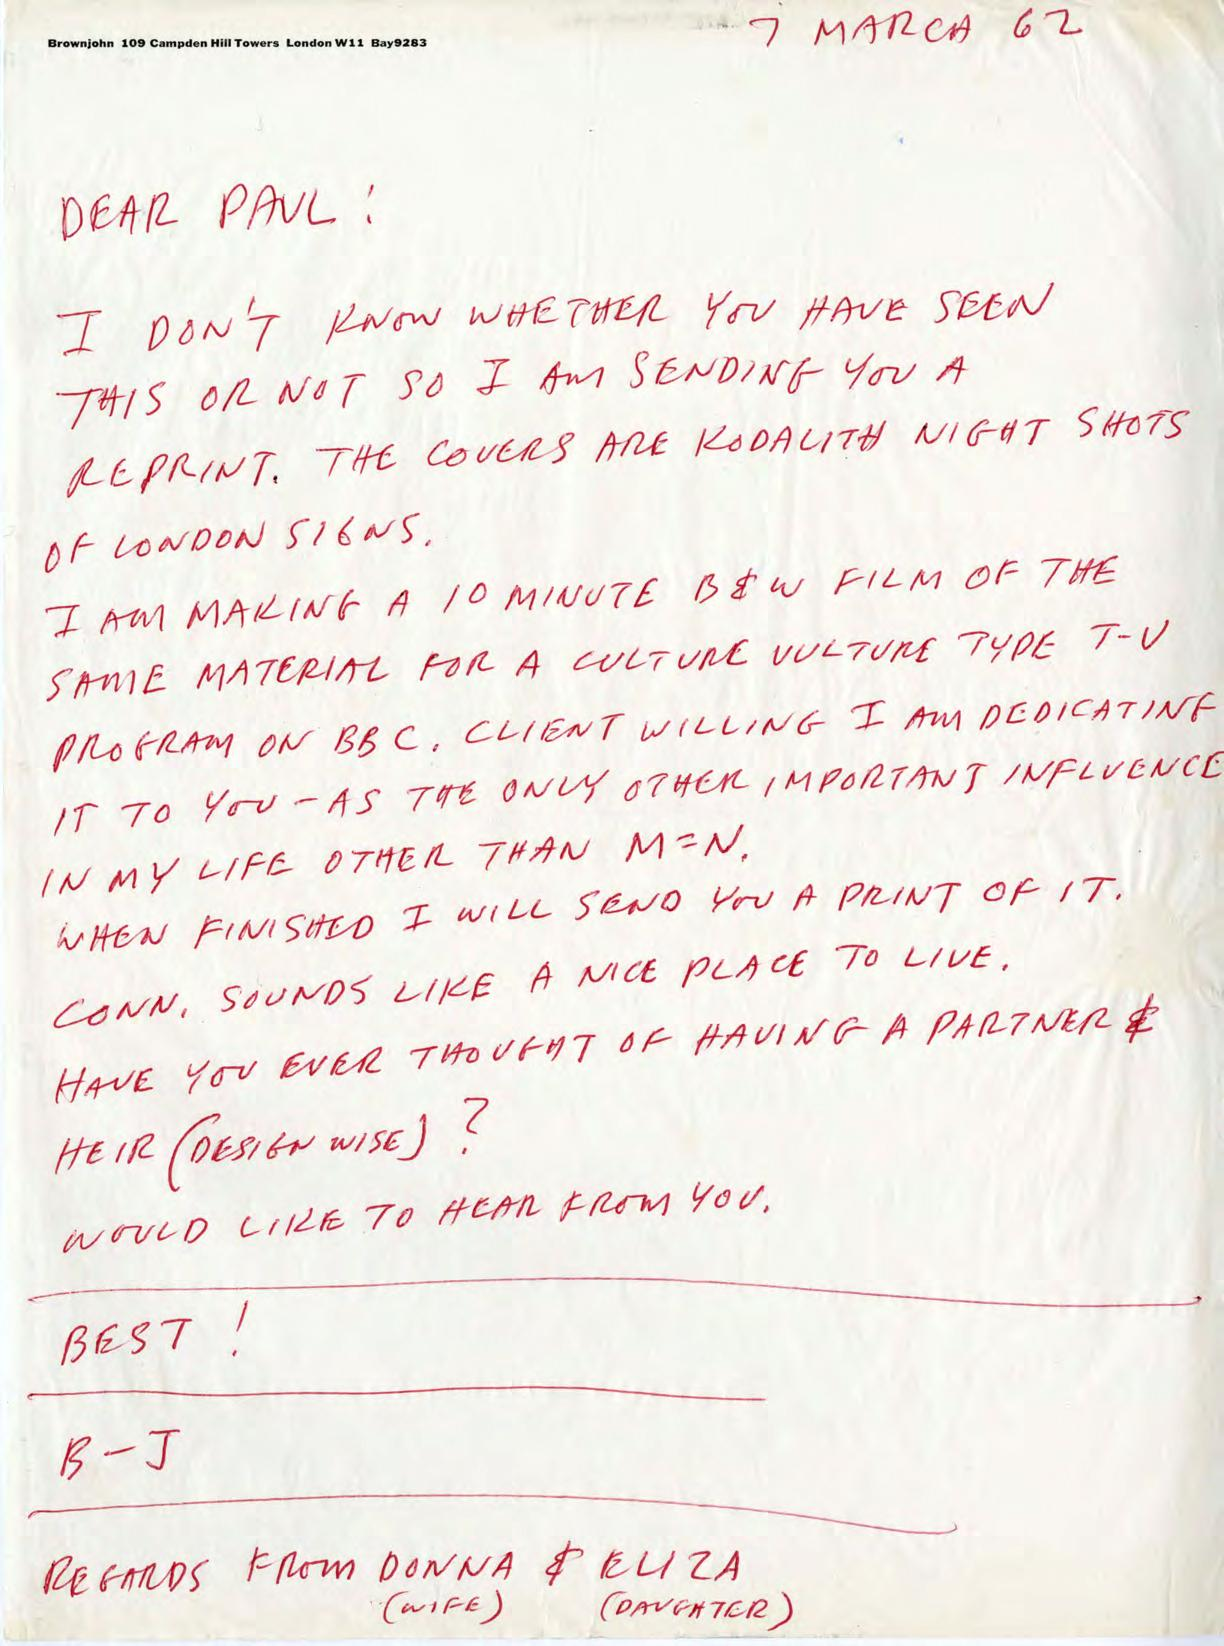 BJ letter to Paul Rand